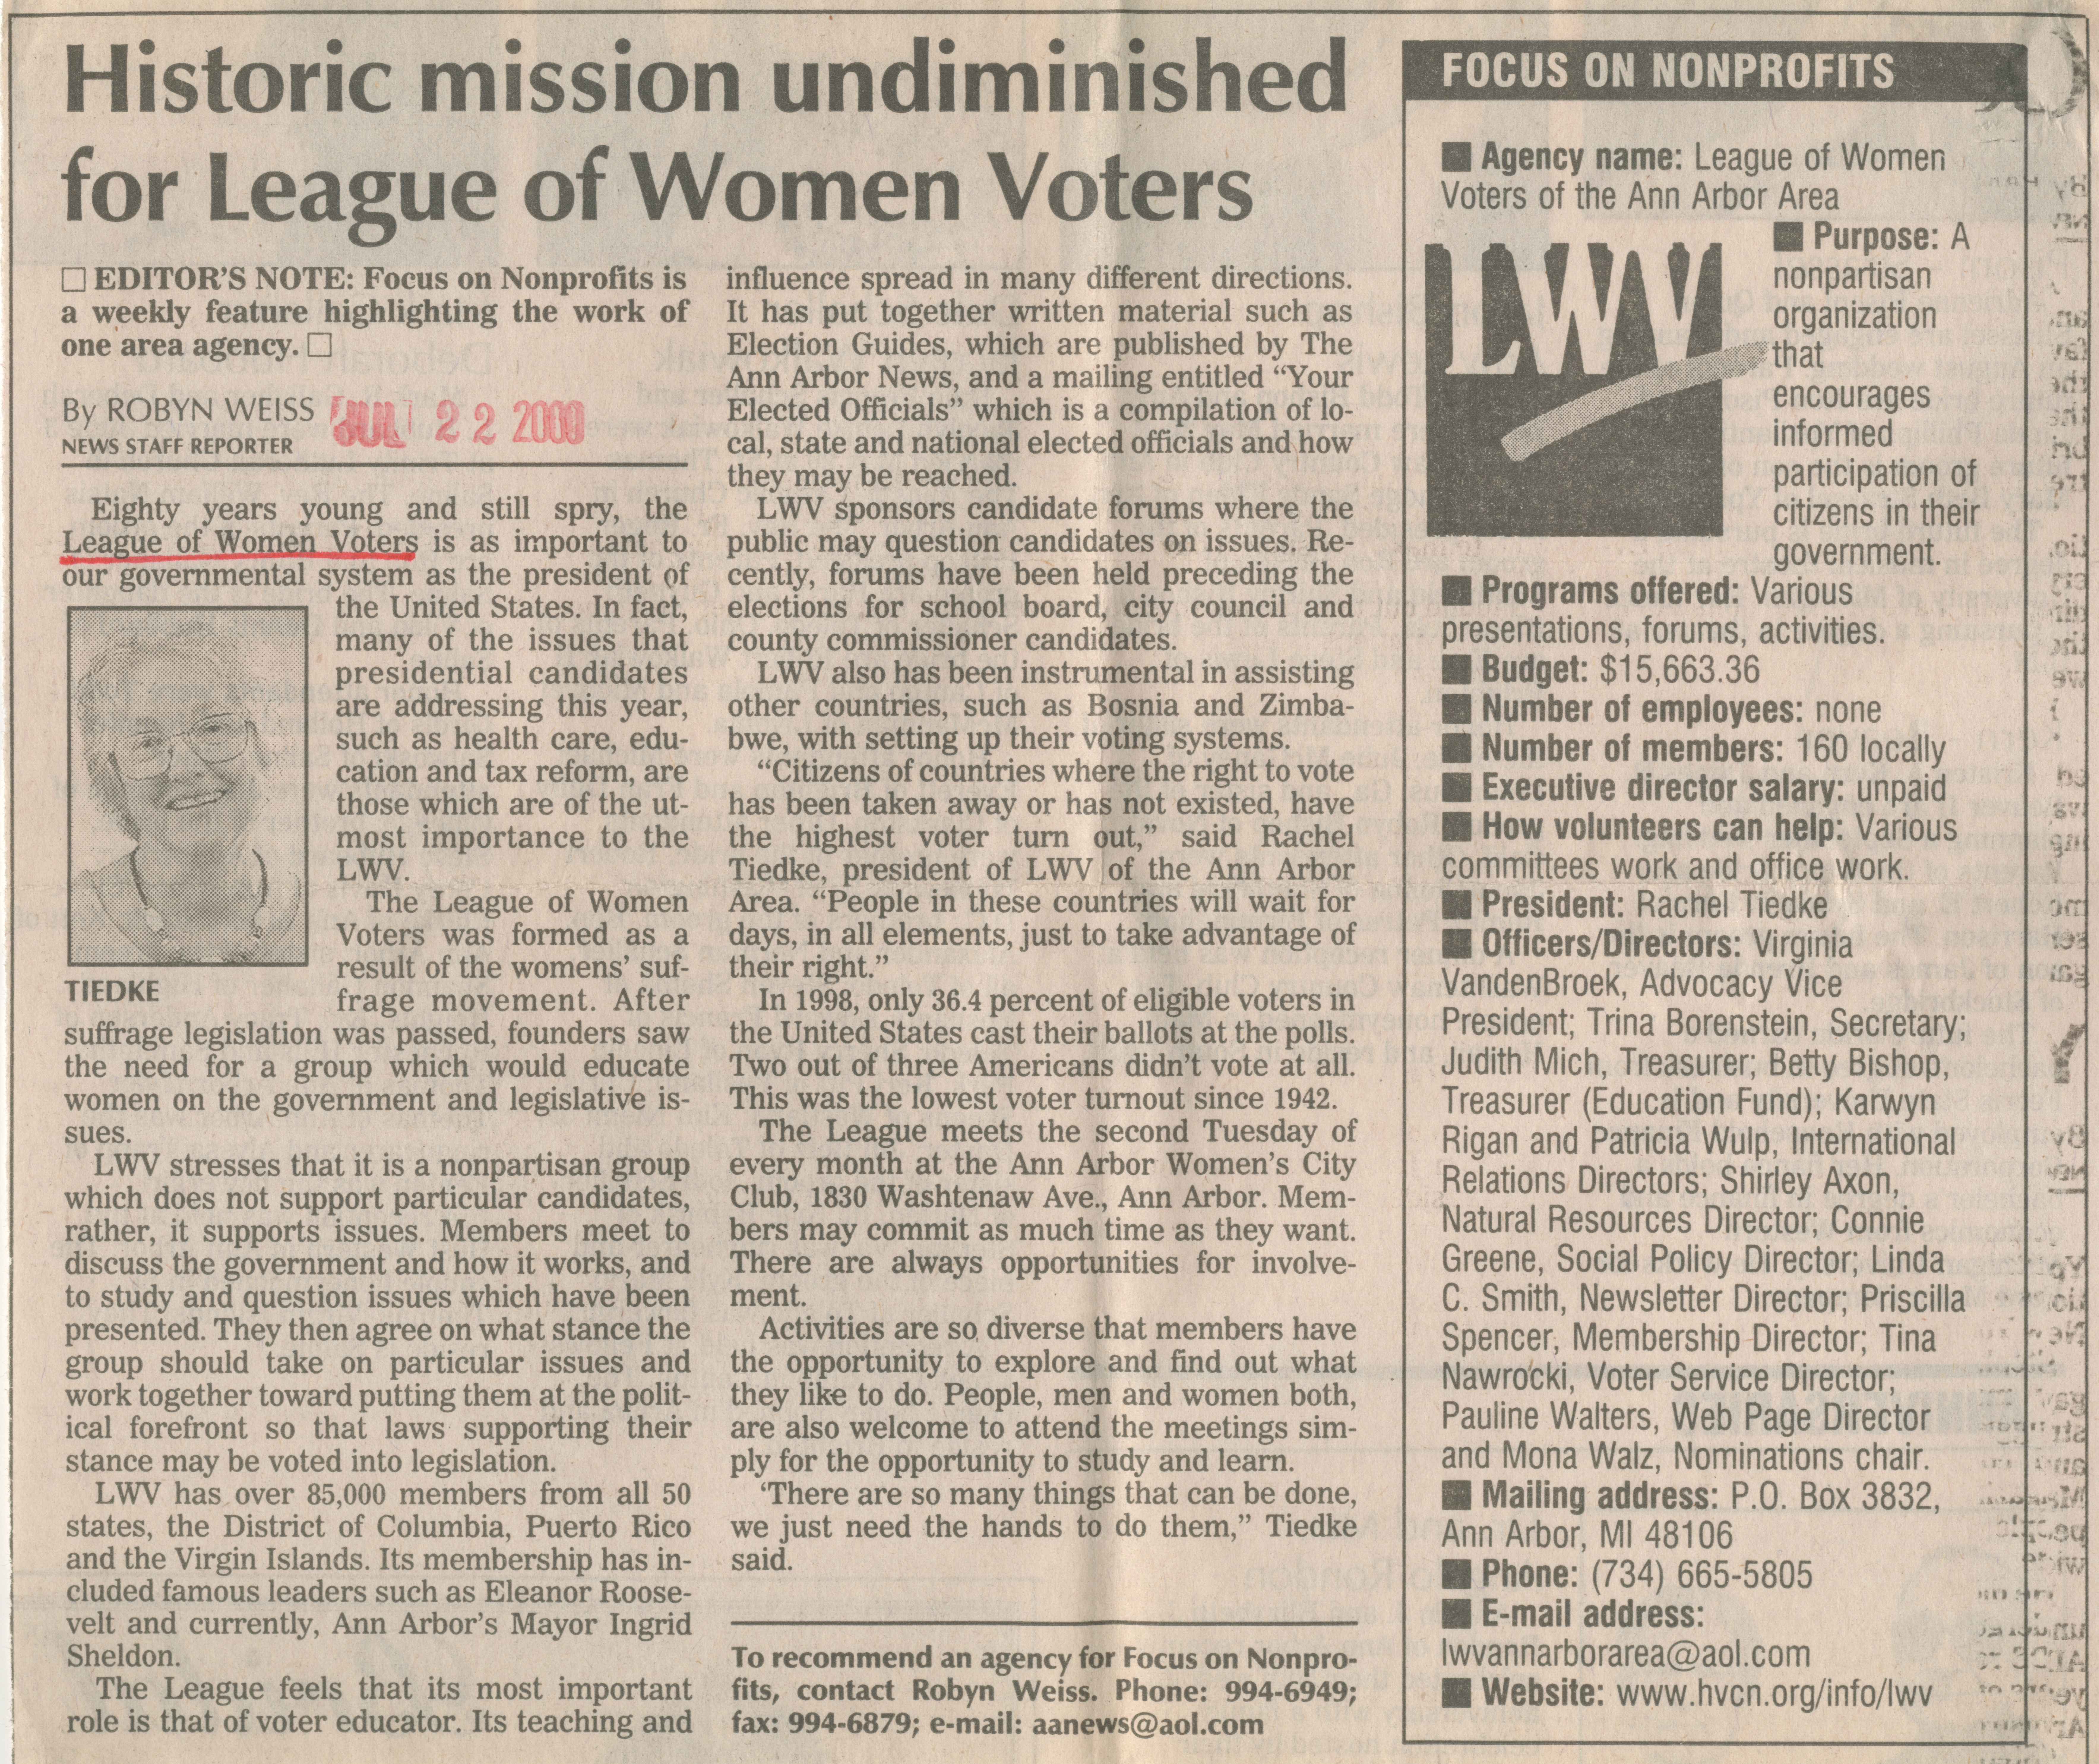 Historic mission undiminished for League of Women Voters image